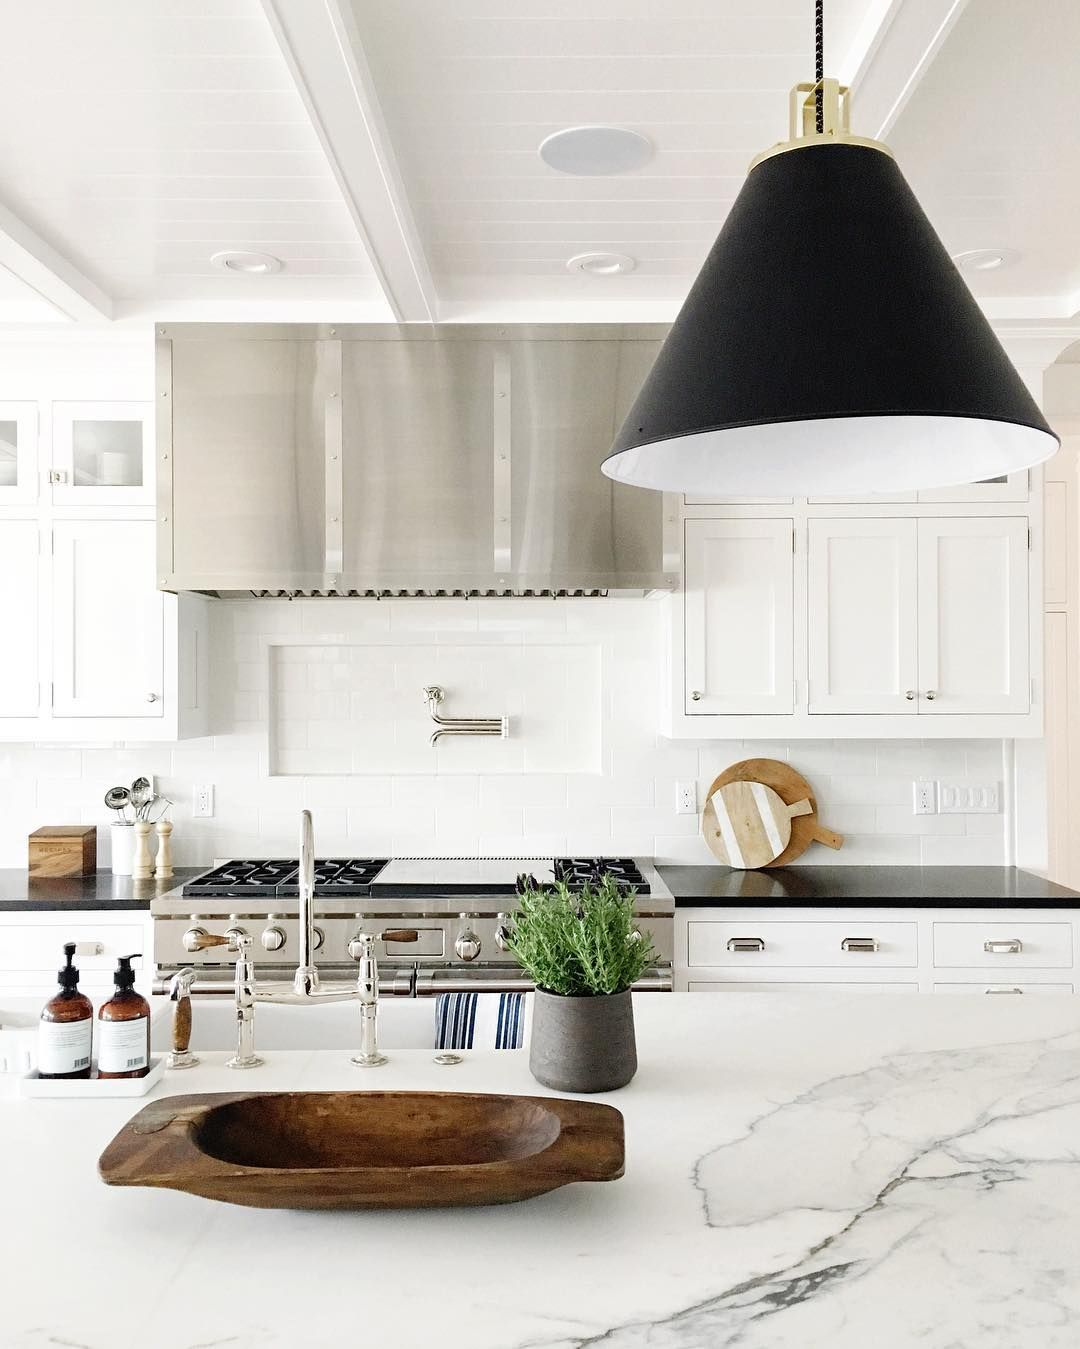 Black pendant light + marble countertop see more at www